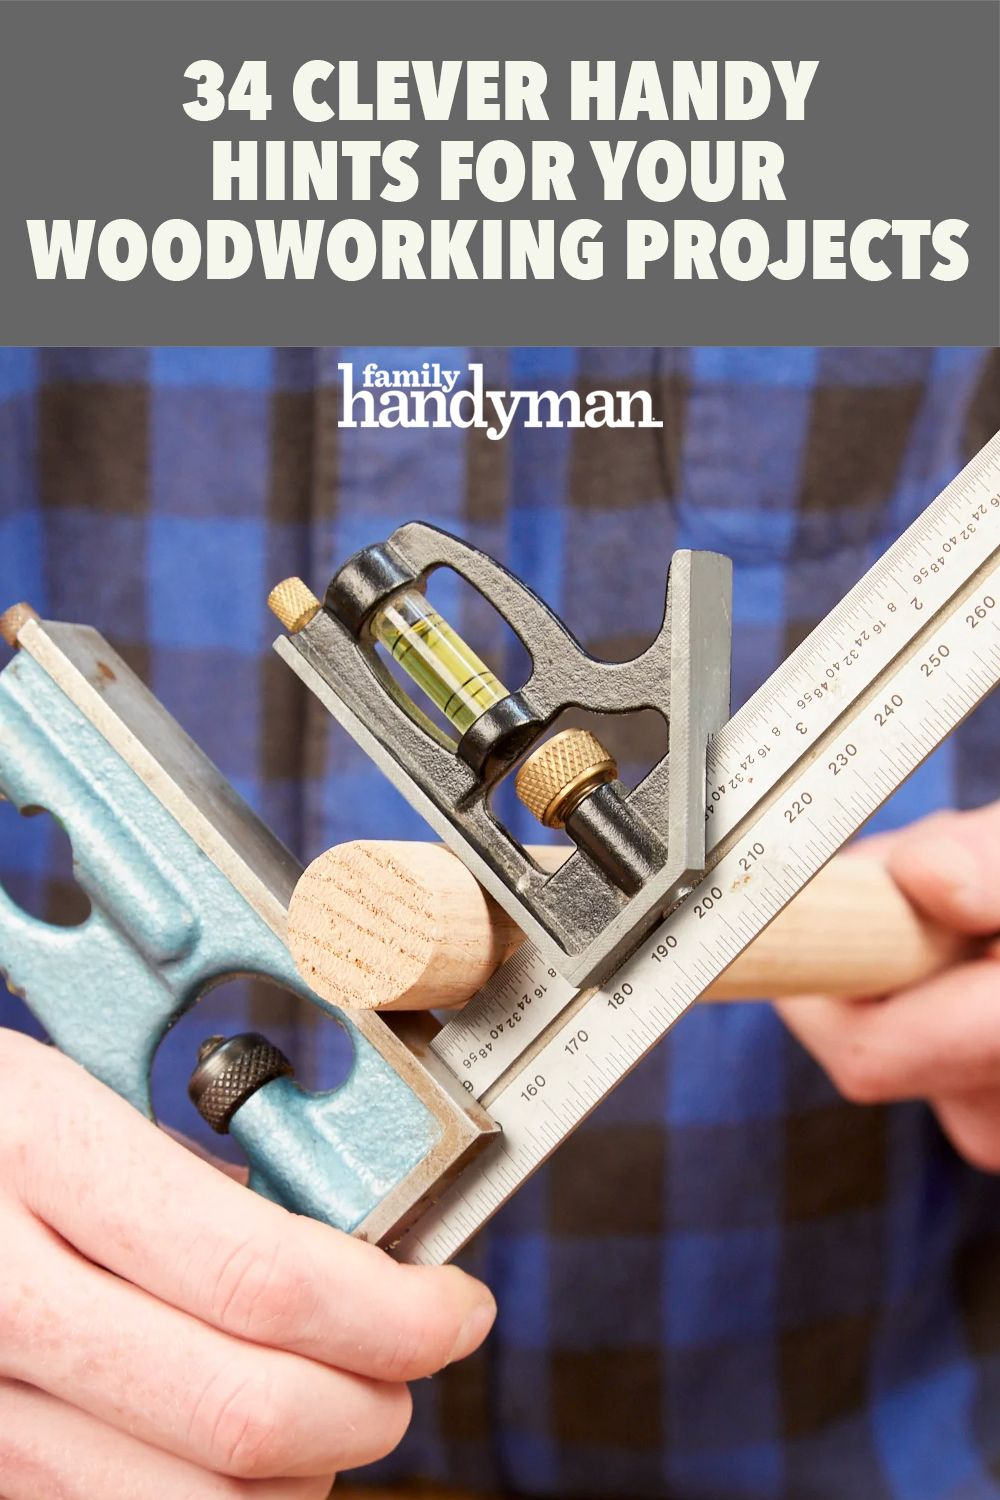 34 clever handy hints for your woodworking projects in